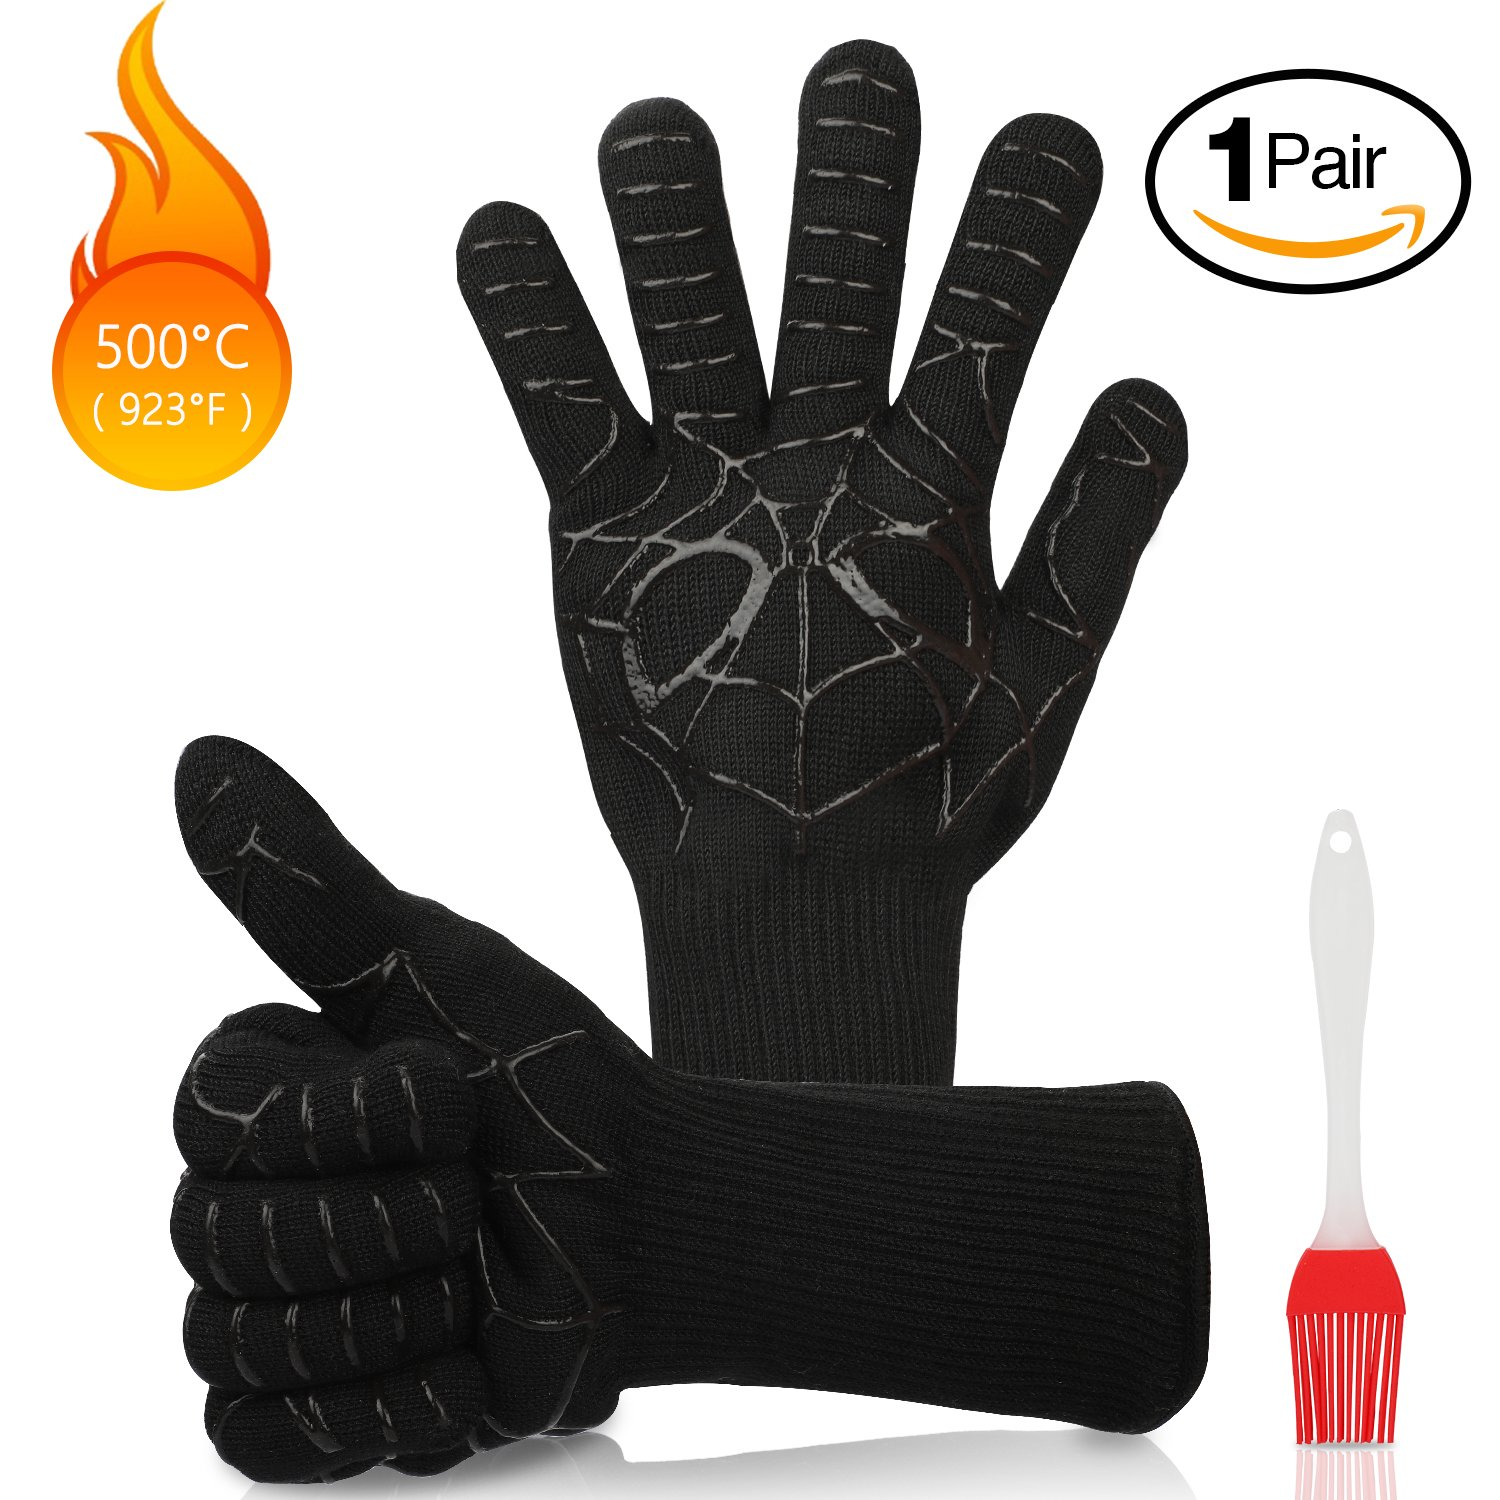 Koooper BBQ Gloves Mitt Grilling Oven Gloves 932 °F Extreme Heat Resistant Gloves for BBQ,Fires,Microwave Oven Cooking Baking and Other Hot Work in Kitchen Thoughtful Gift for Your Mon & Wife